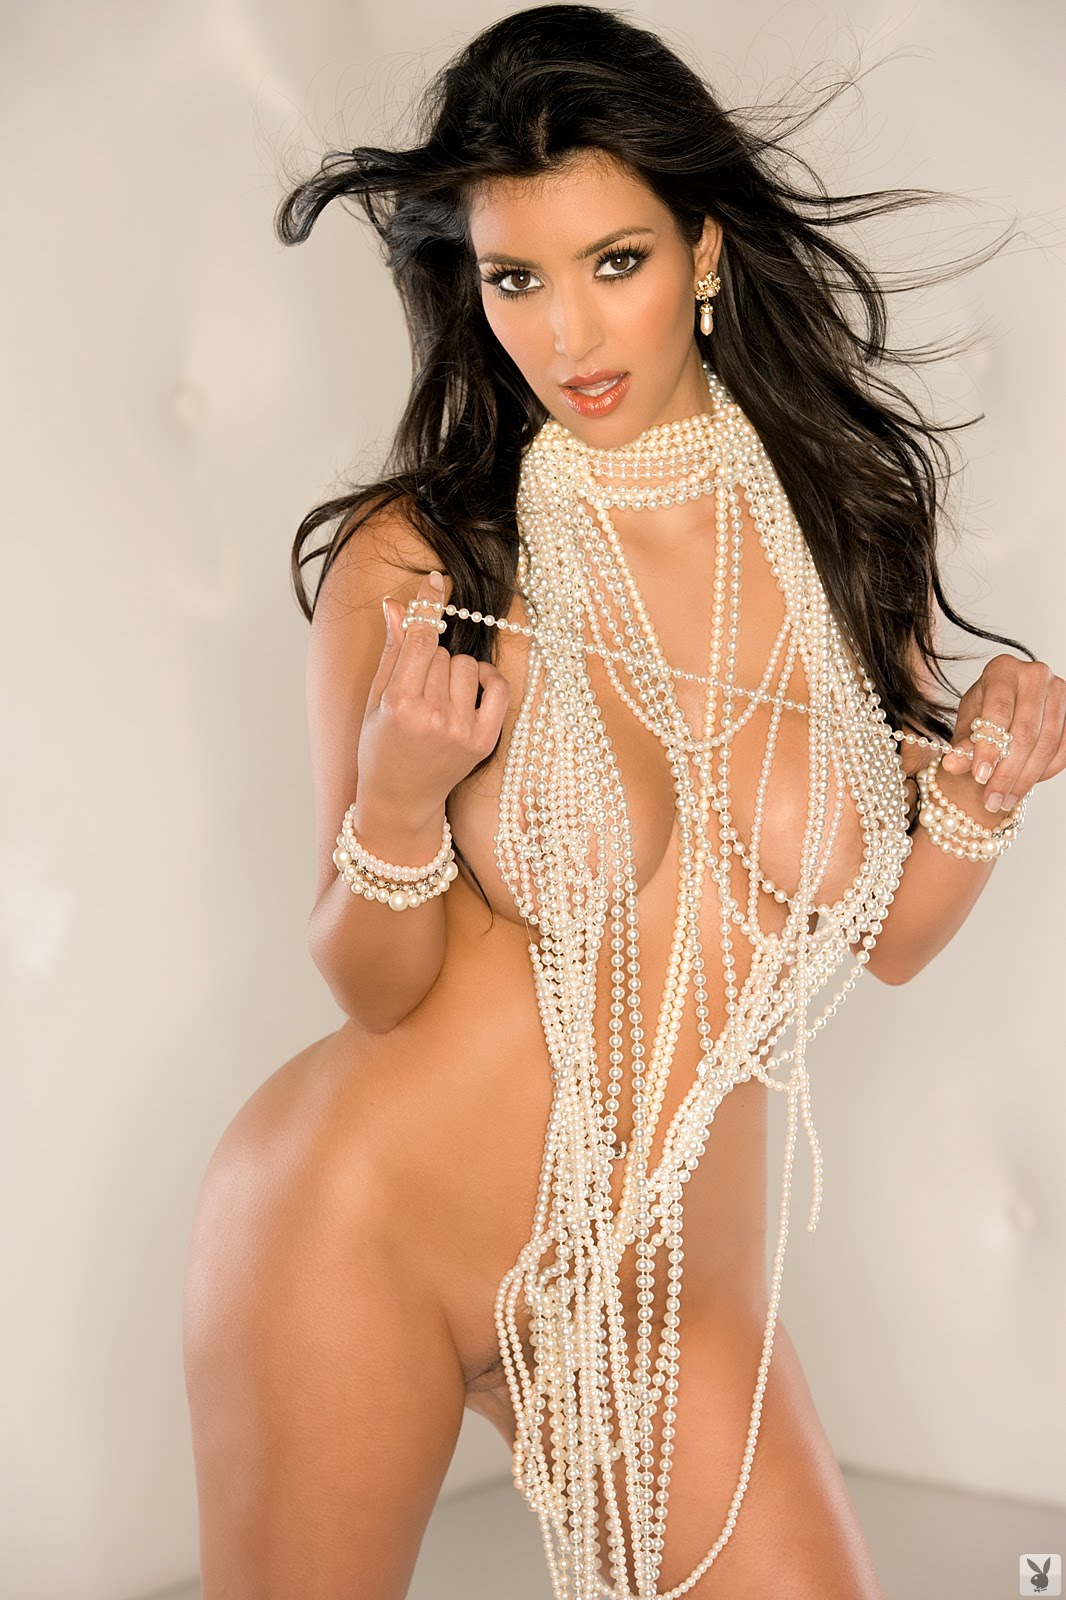 Kim Kardashian naked with pearls for playboy magazine 2010